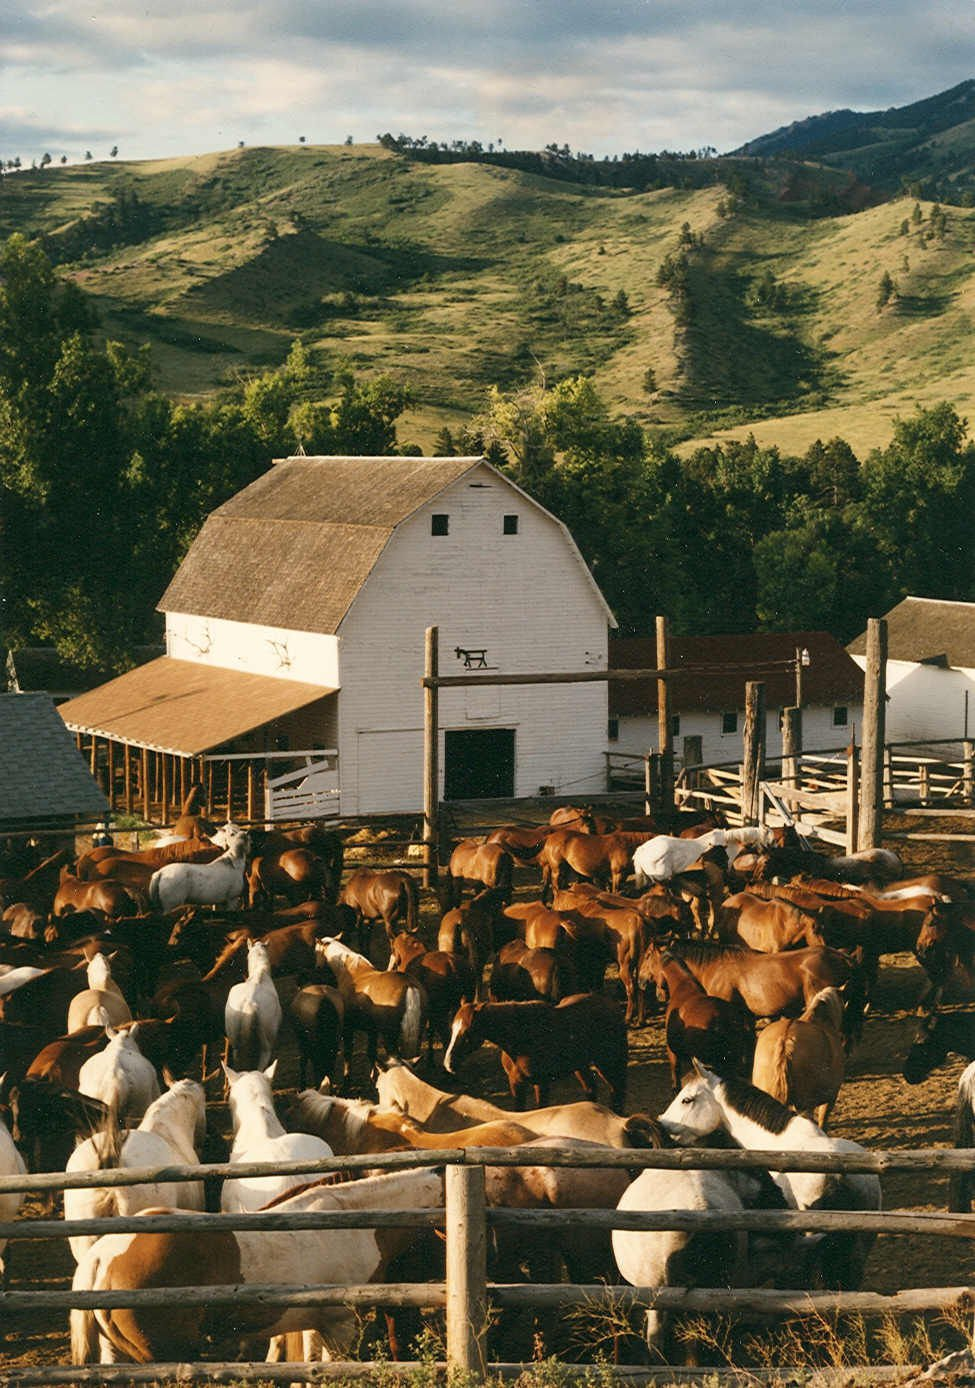 WV Travel Team: Dude ranch vacation feeds cowboy dreams for city ...